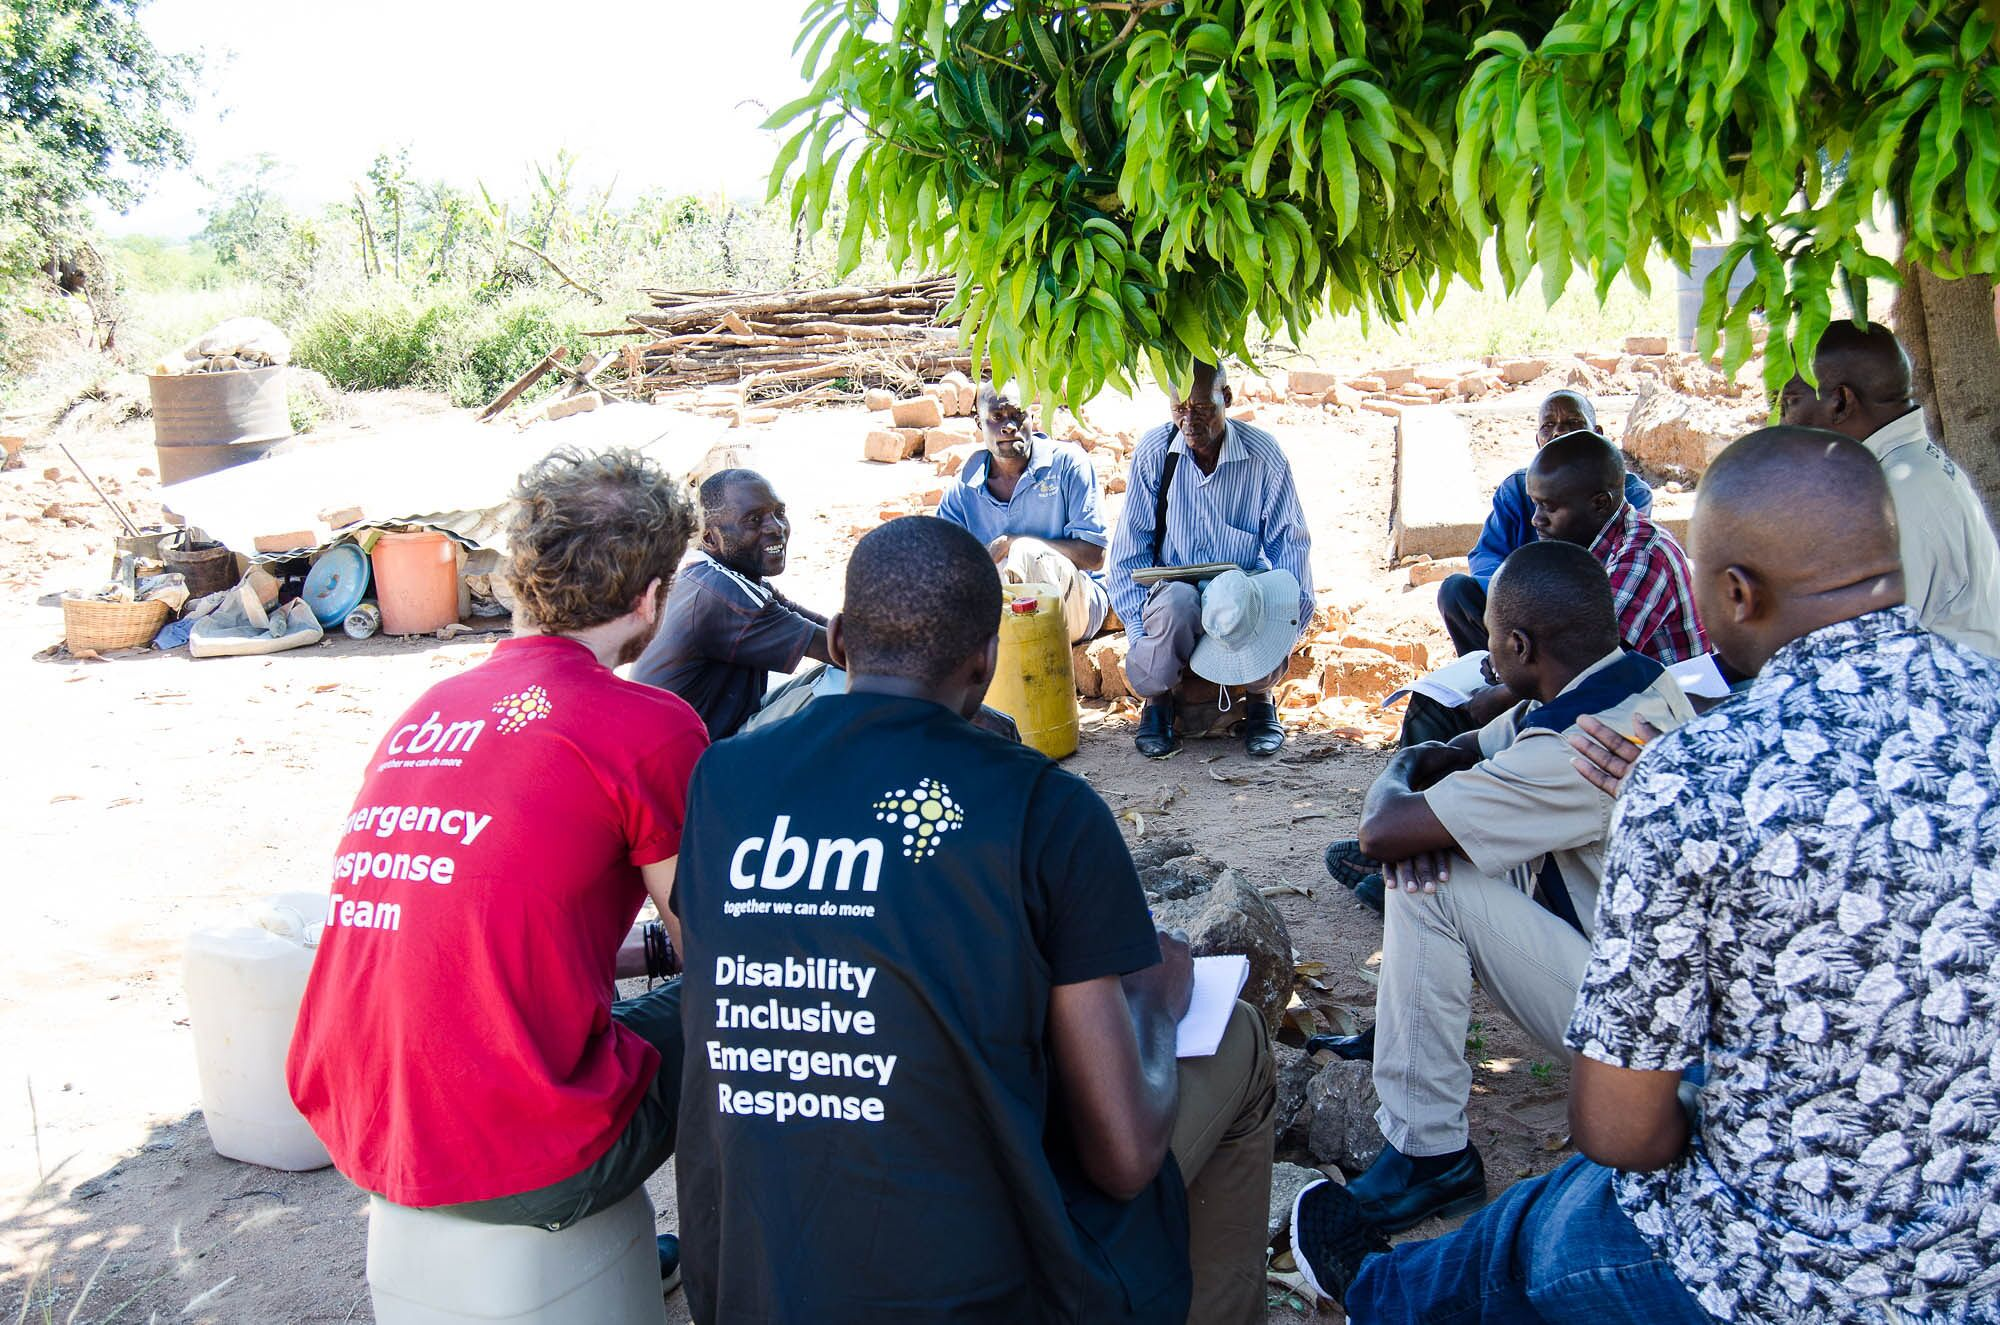 CBM's Emergency Response team at work in Zimbabwe (c) CBM